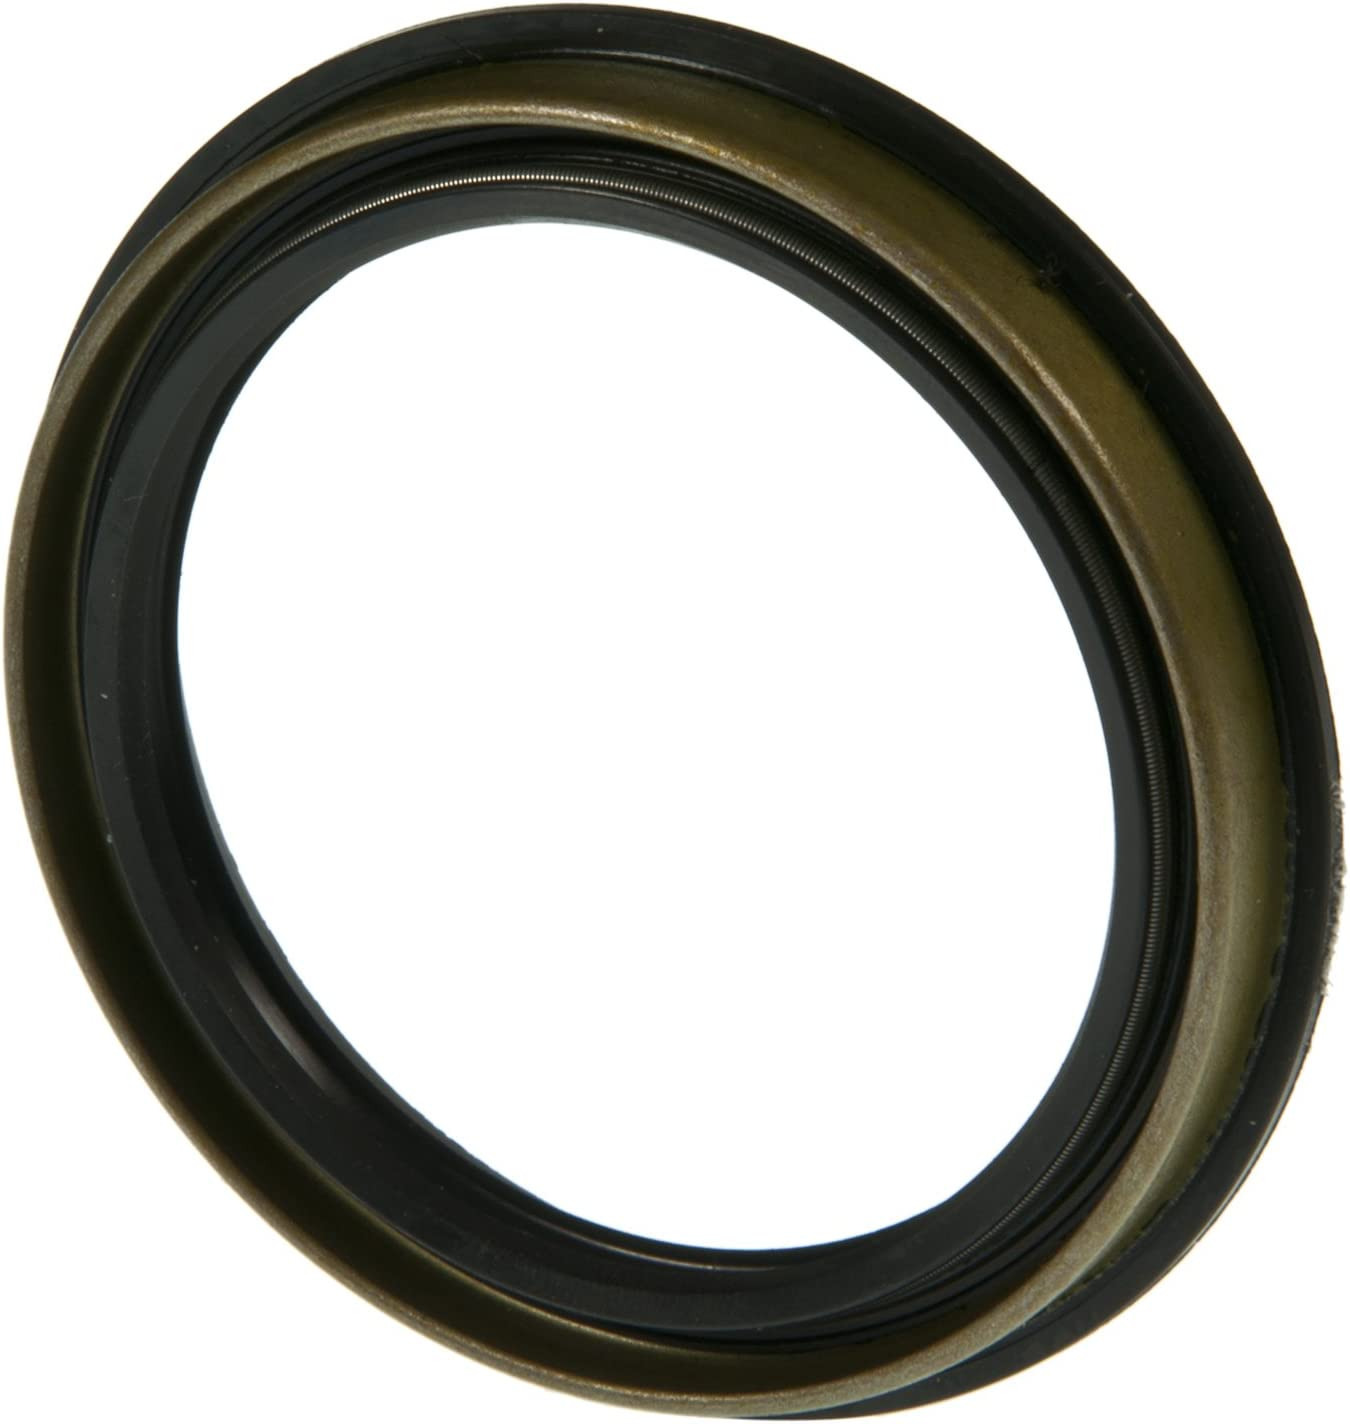 National 710127 Seal Wheel Max 75% OFF Soldering